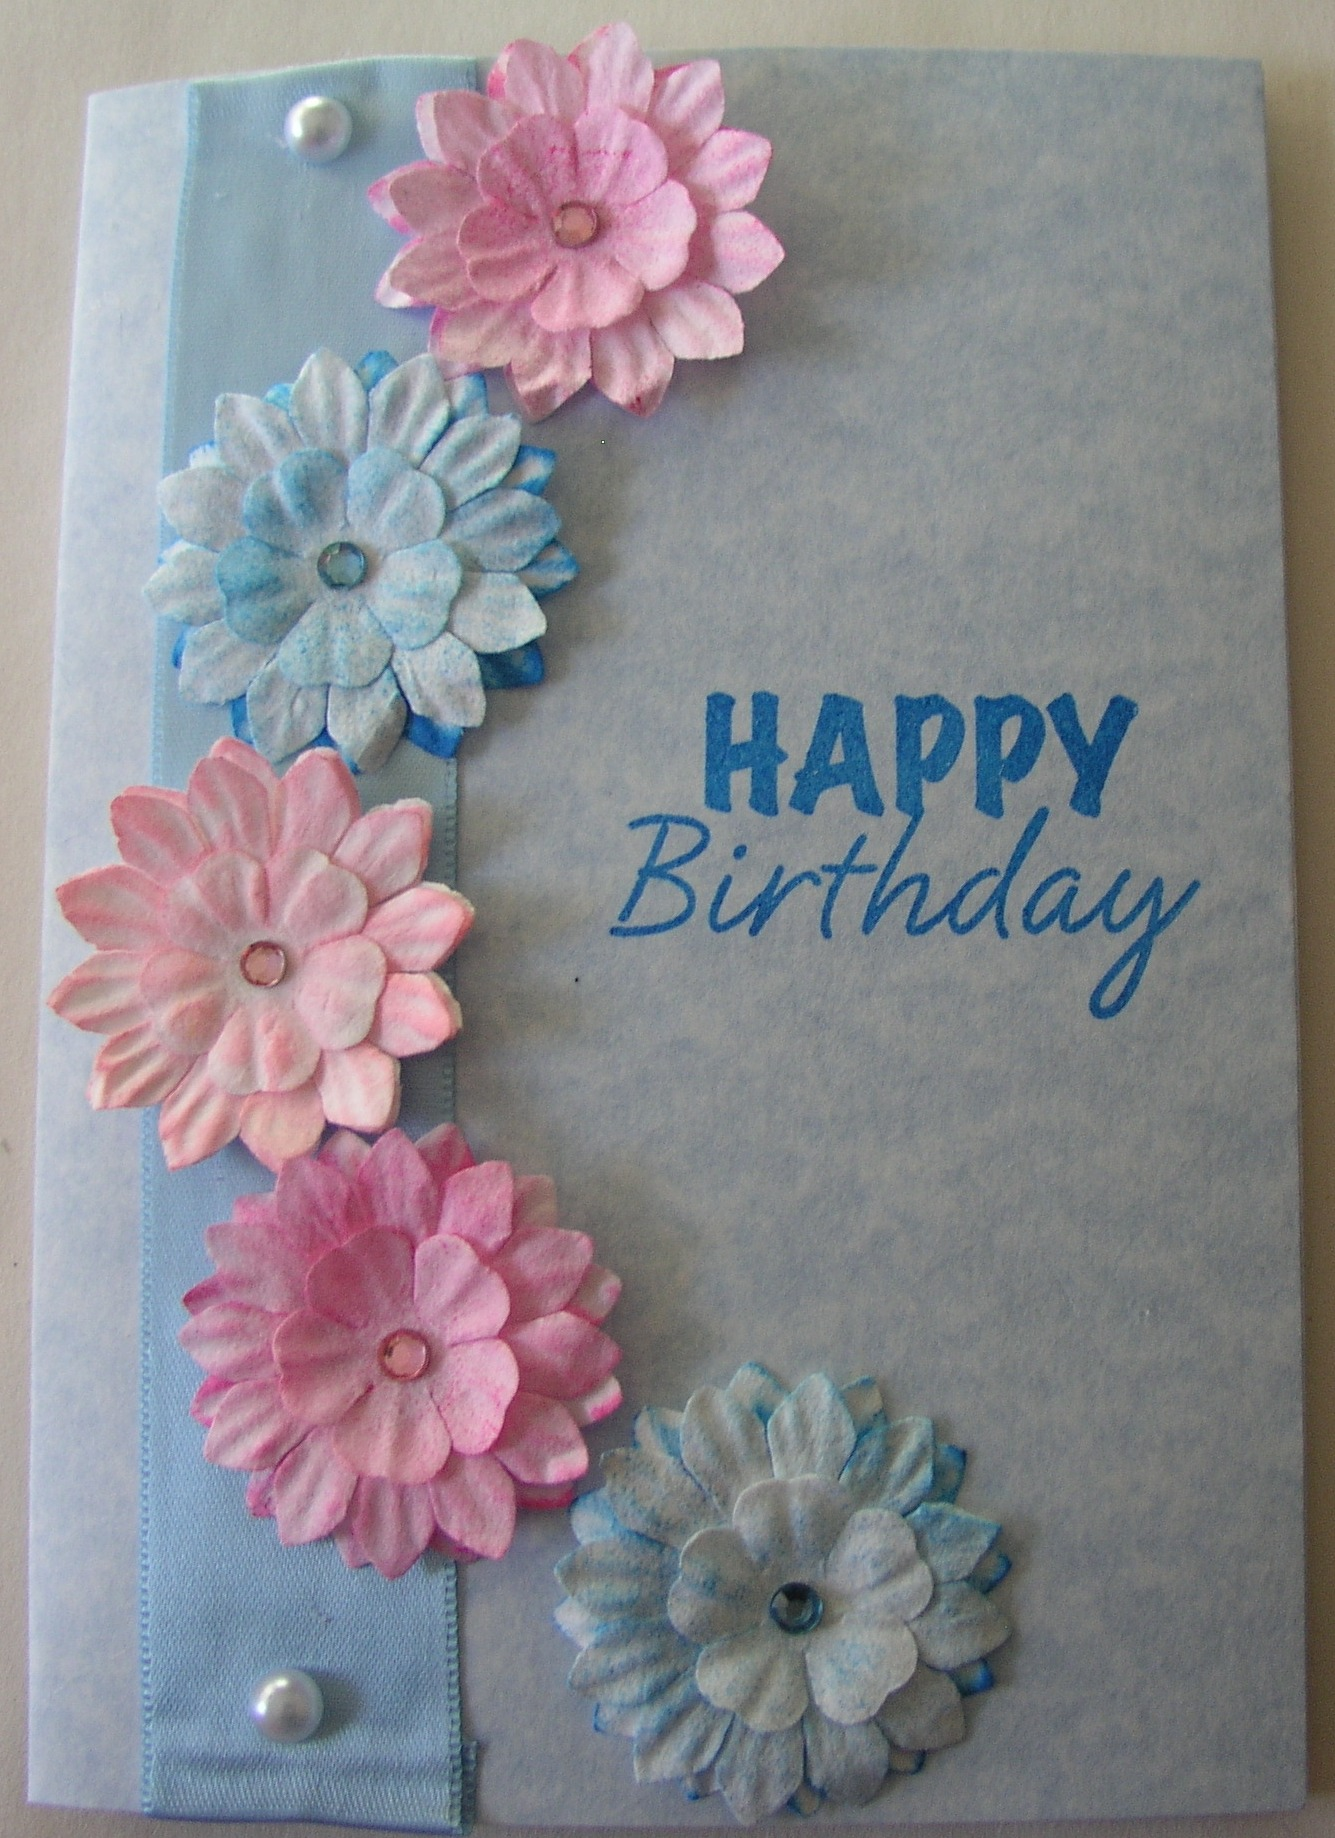 How To Make Homemade Greeting Cards New House Designs